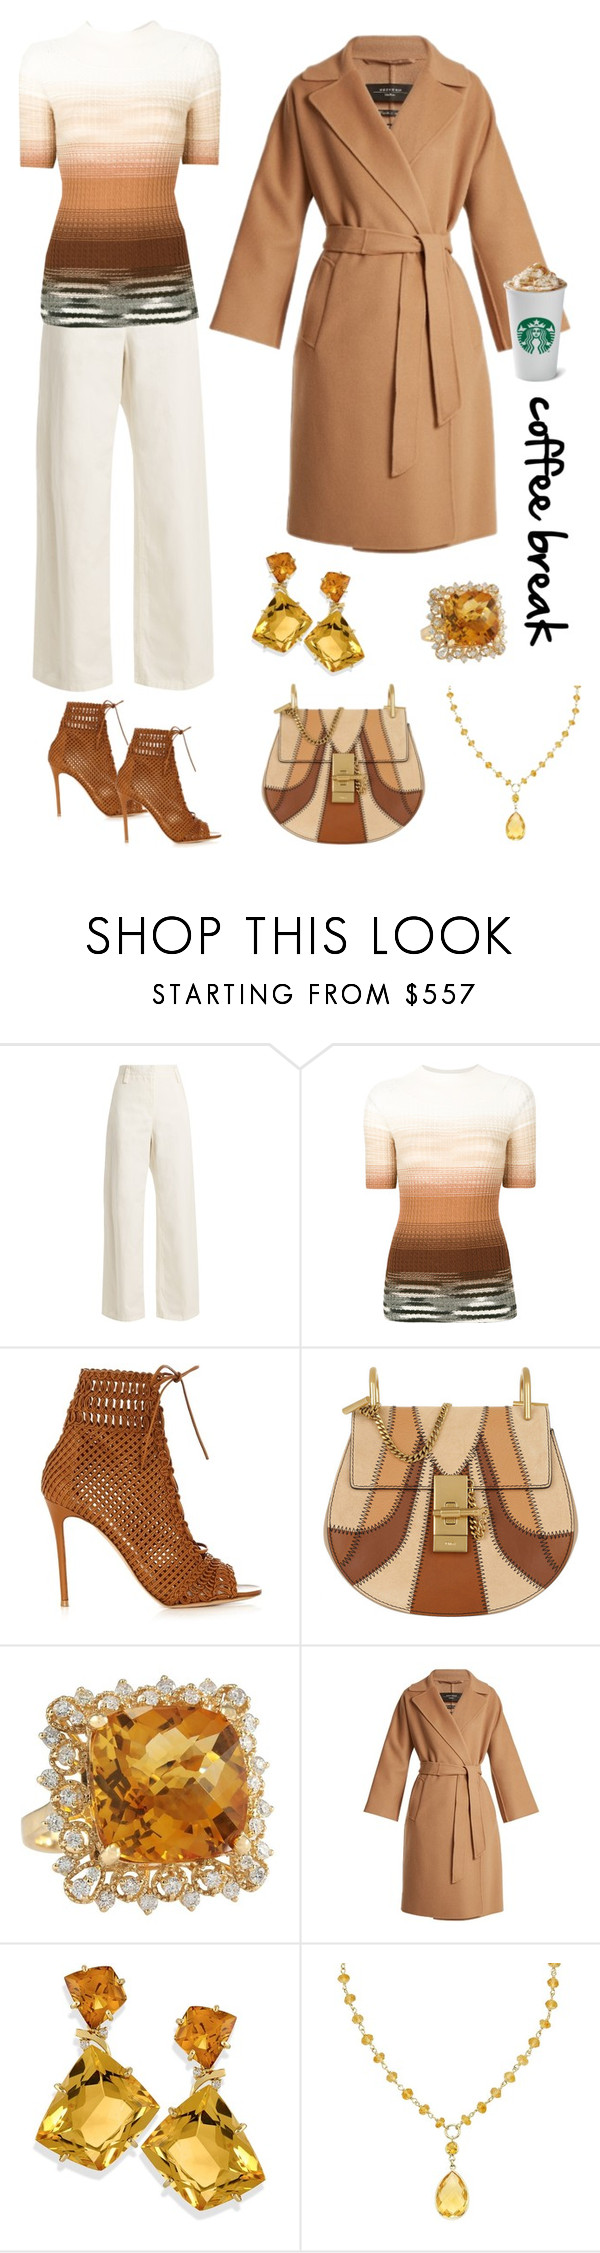 """""""Caffeine Fix: Coffee Break"""" by karen-galves ❤ liked on Polyvore featuring The Row, Missoni, Gianvito Rossi, Chloé, Weekend Max Mara and coffeebreak"""